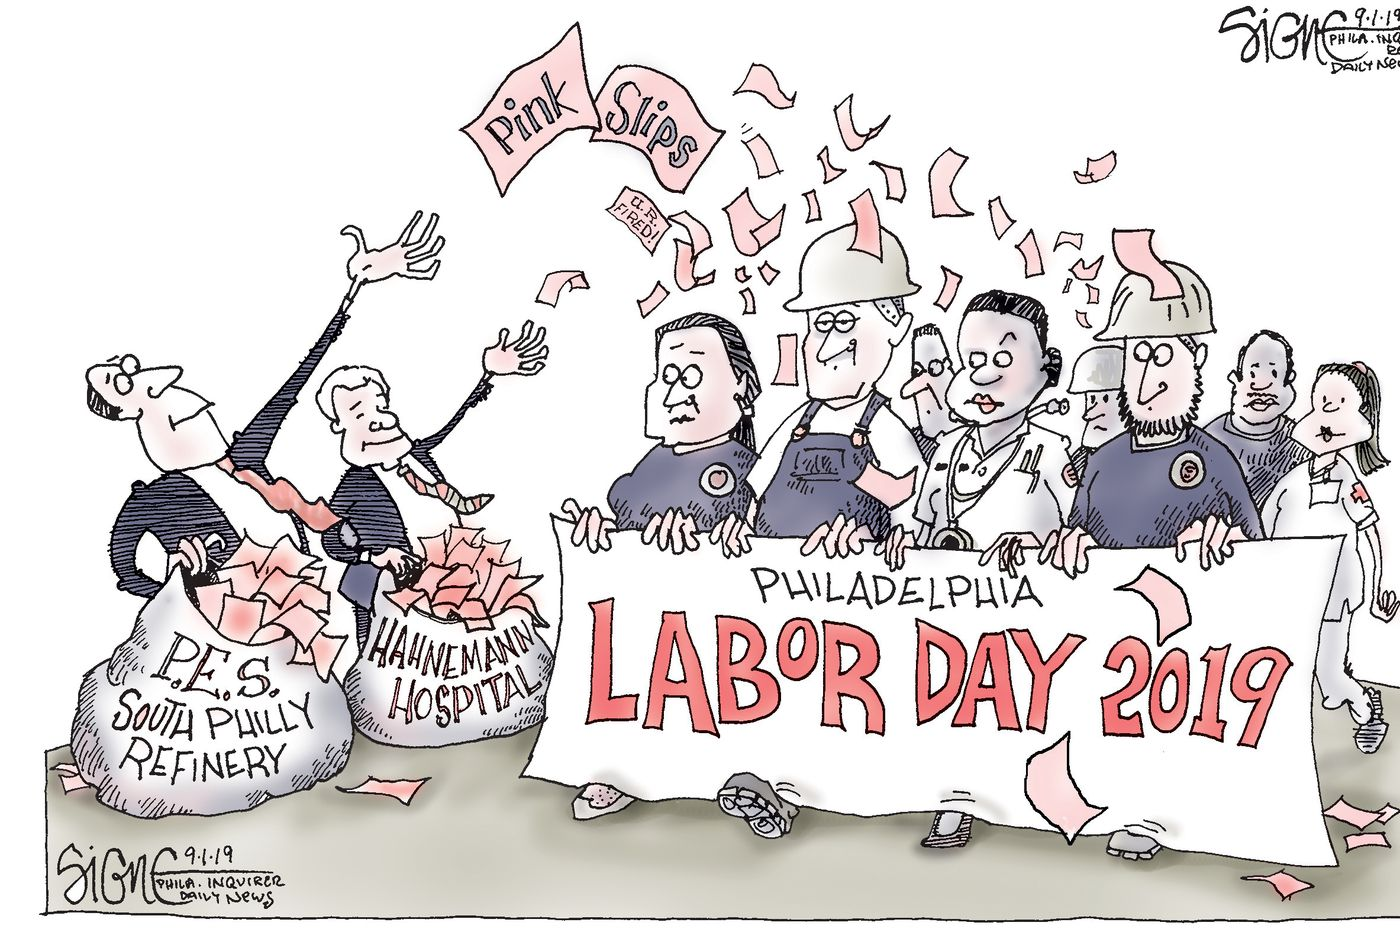 Political Cartoon: Labor Day pink slips for Philly workers